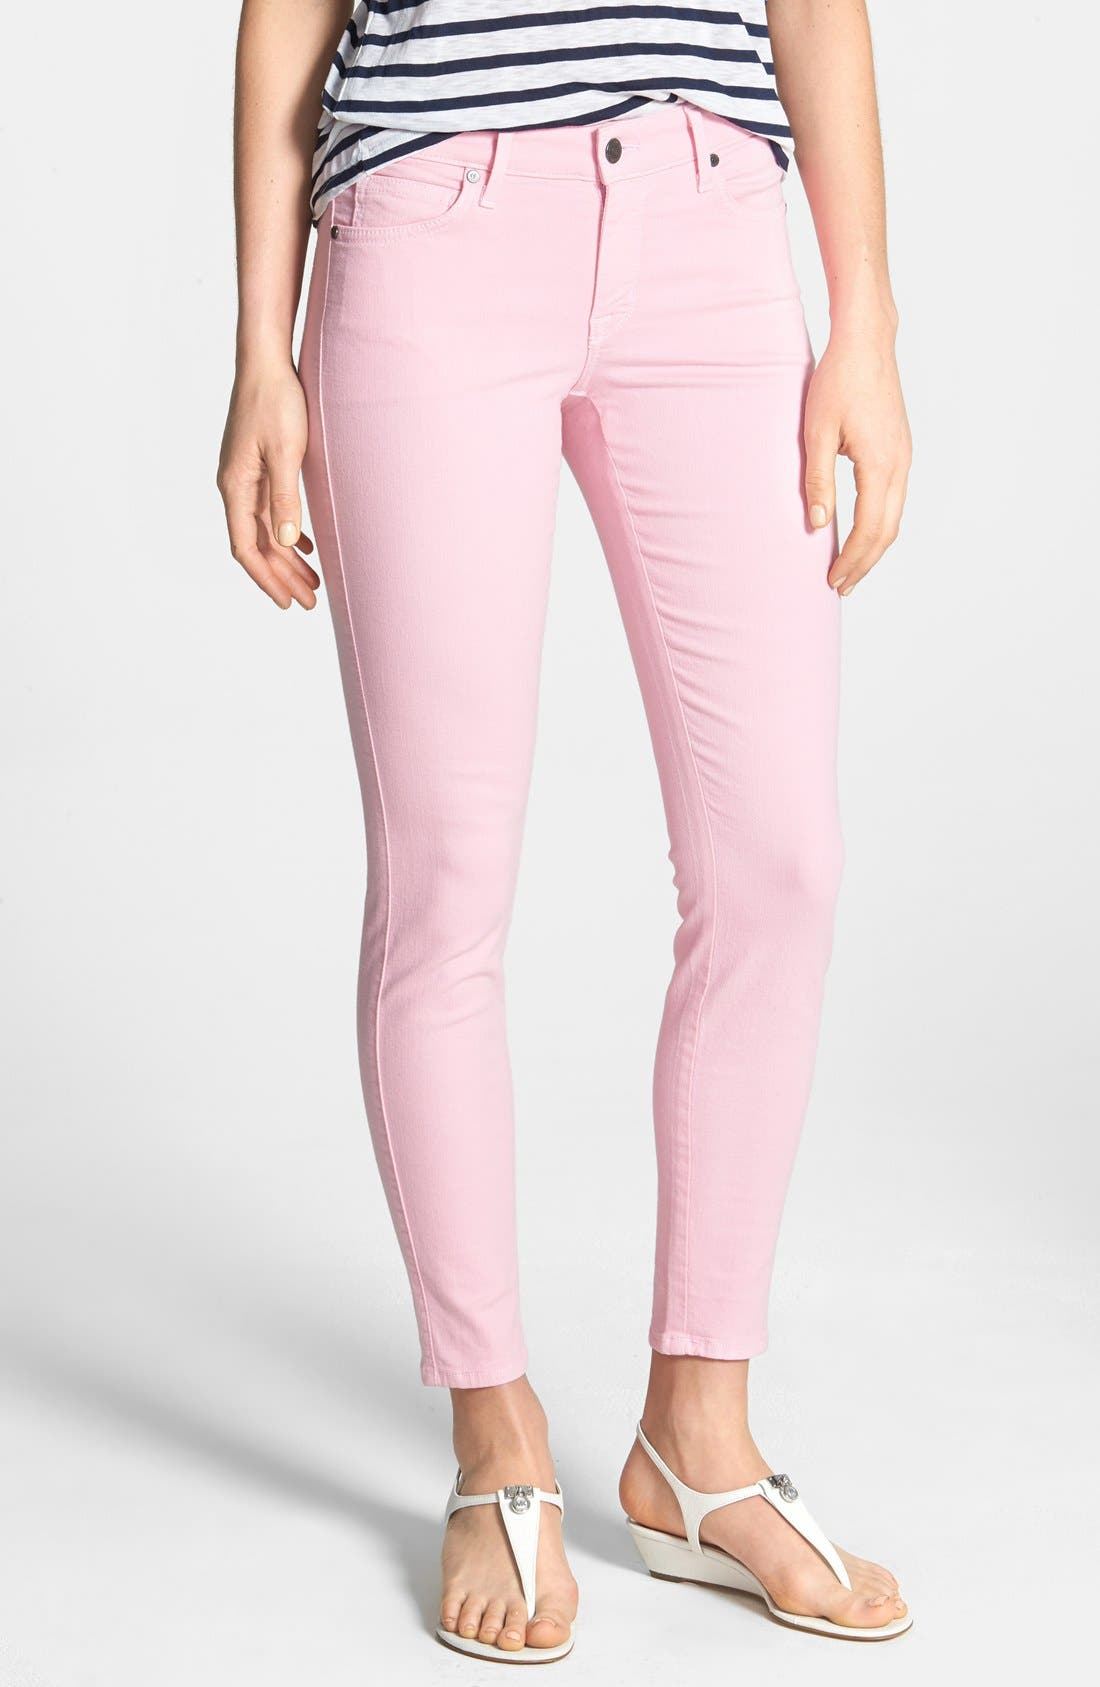 Alternate Image 1 Selected - CJ by Cookie Johnson 'Wisdom' Colored Ankle Skinny Jeans (Pink)